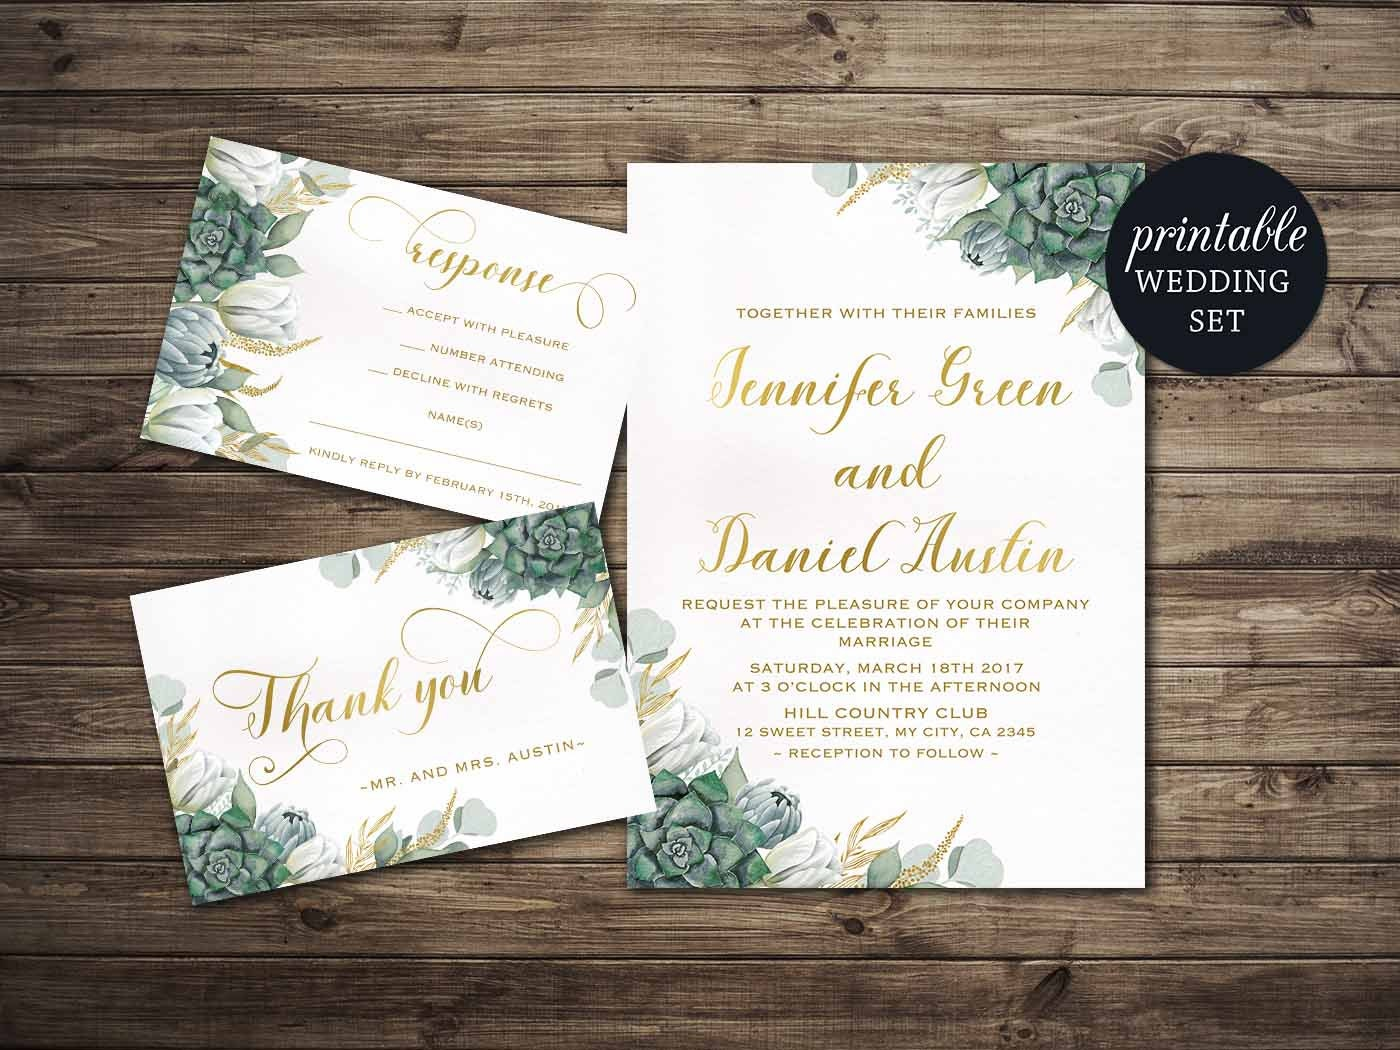 Printable Wedding Invitation Sets: Printable Wedding Invitation Floral Wedding Invitation Set